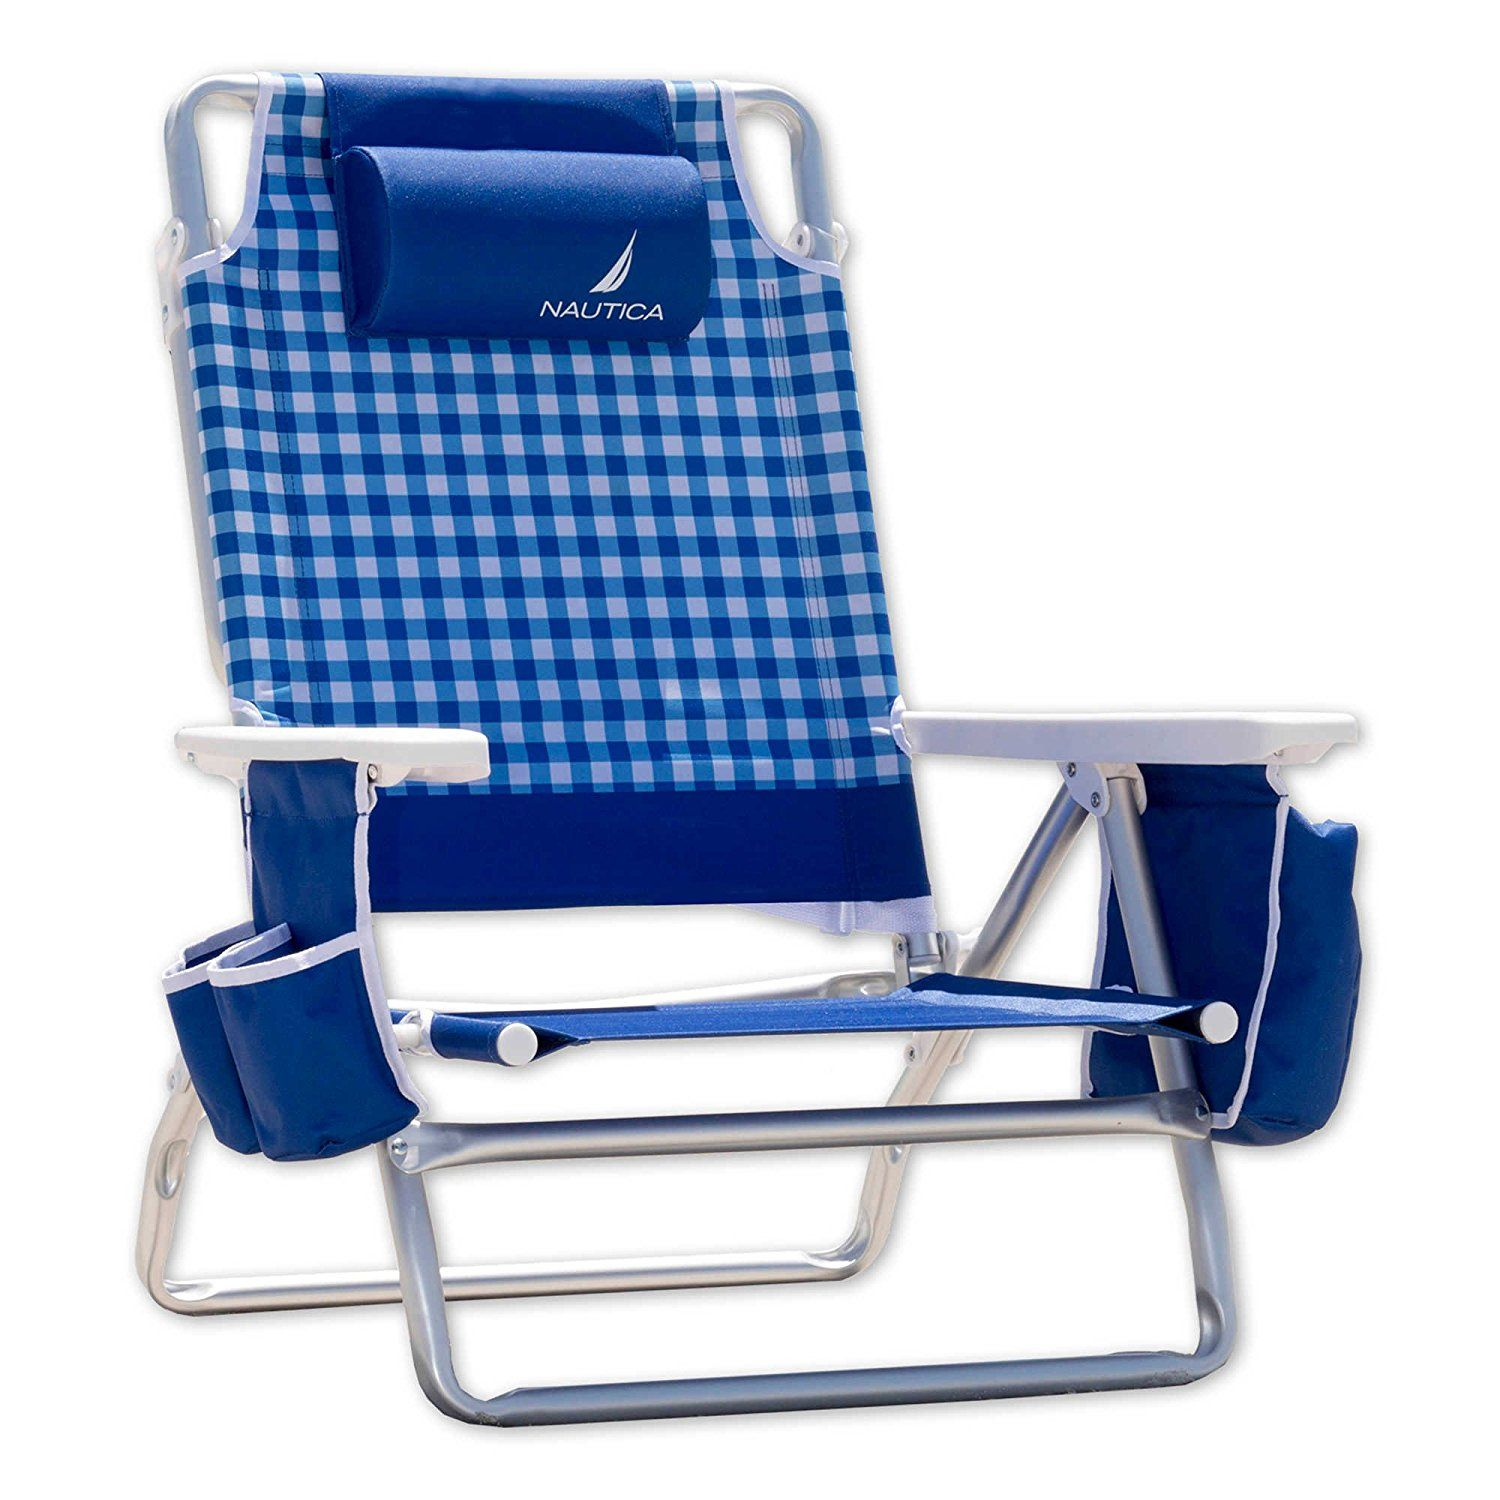 beach chair cup holder hotel chairs for sale nautica lightweight 5 position recliner folding backpack with see this great product is an affiliate link and i receive a